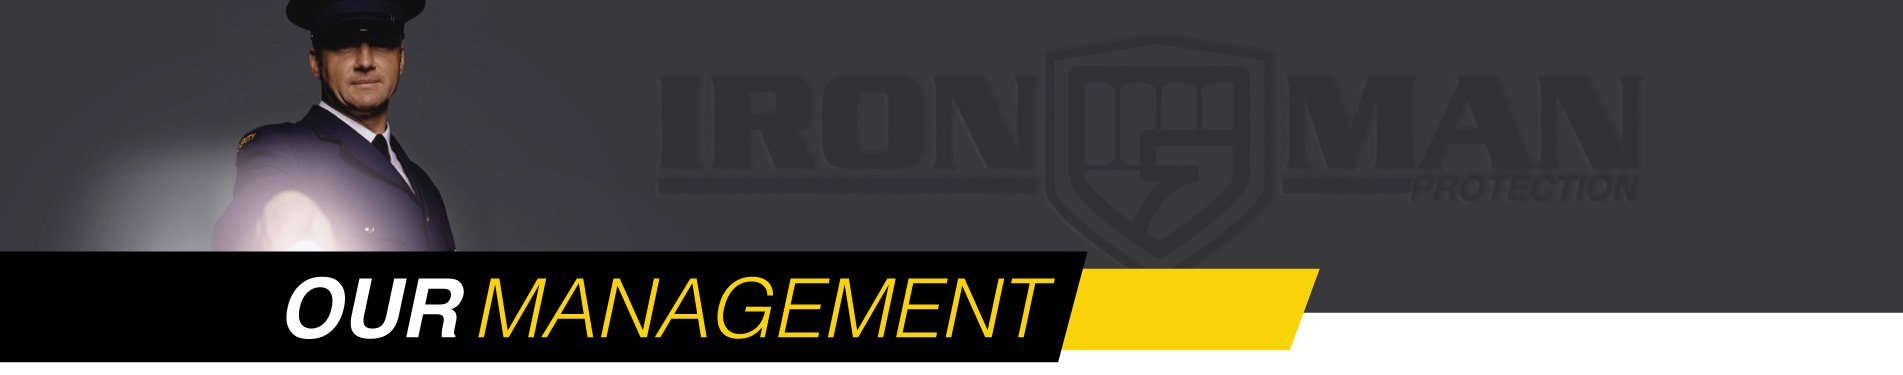 Introducing Houston Iron Man Protections Management Team